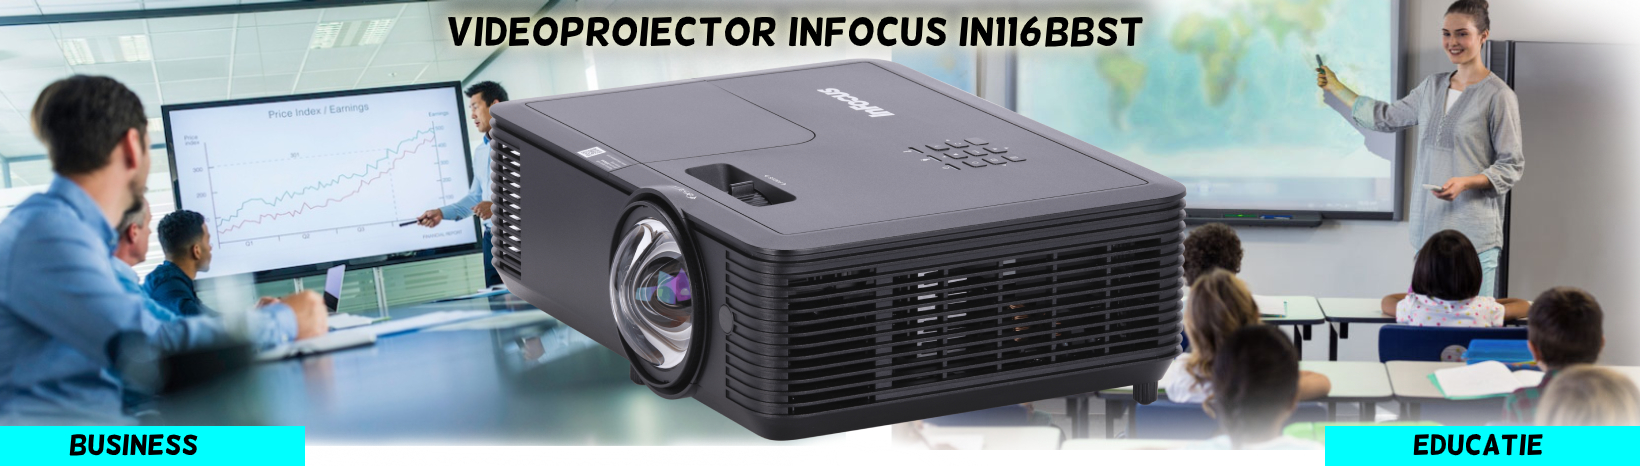 Videoproiector Infocus short-throw IN116BBST mediul business si educational